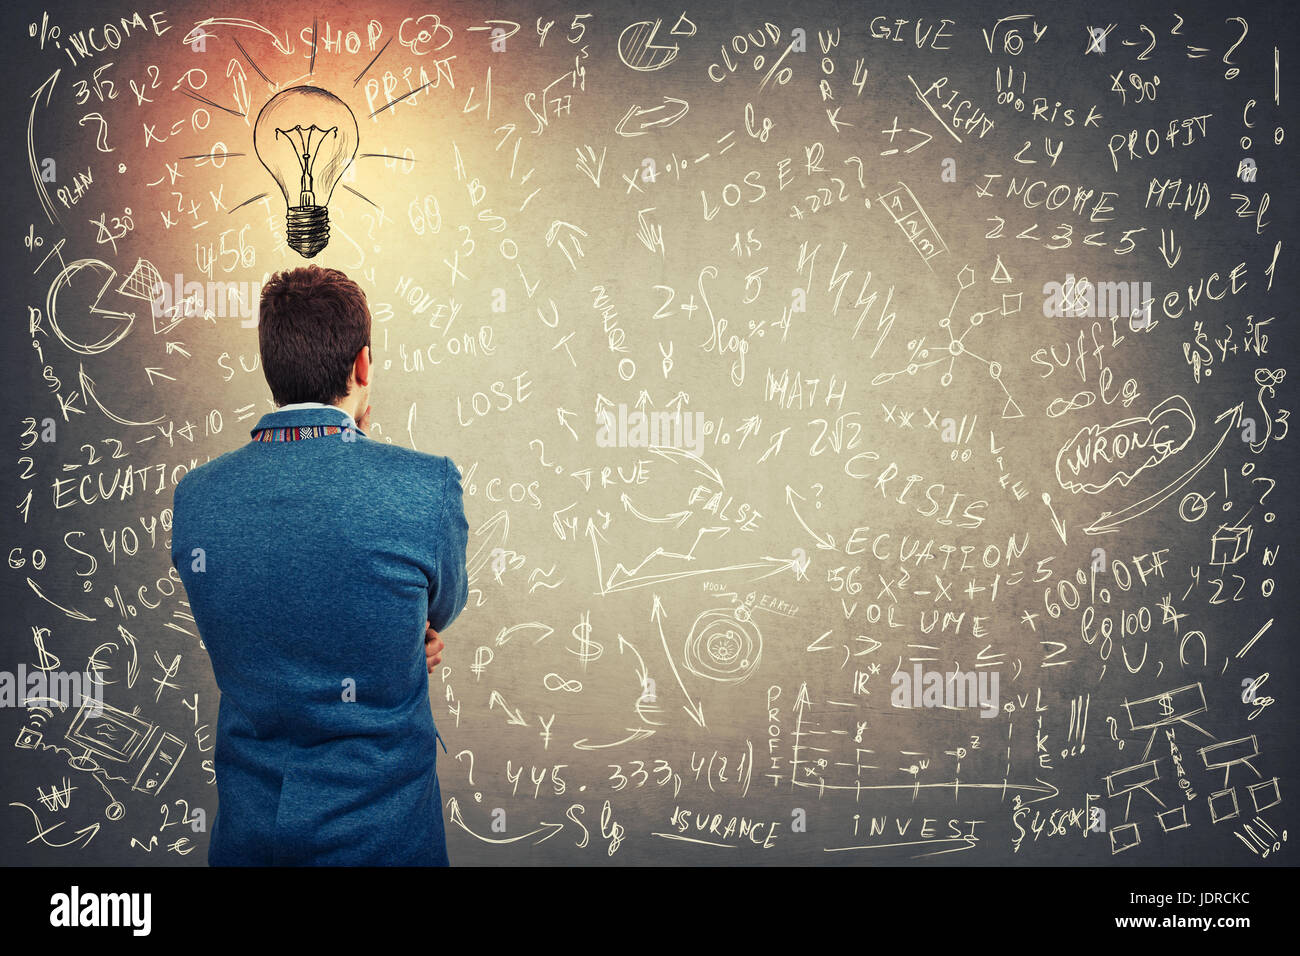 Rear view of a puzzled businessman with a lightbulb sketch above head having project ideas and business planning - Stock Image